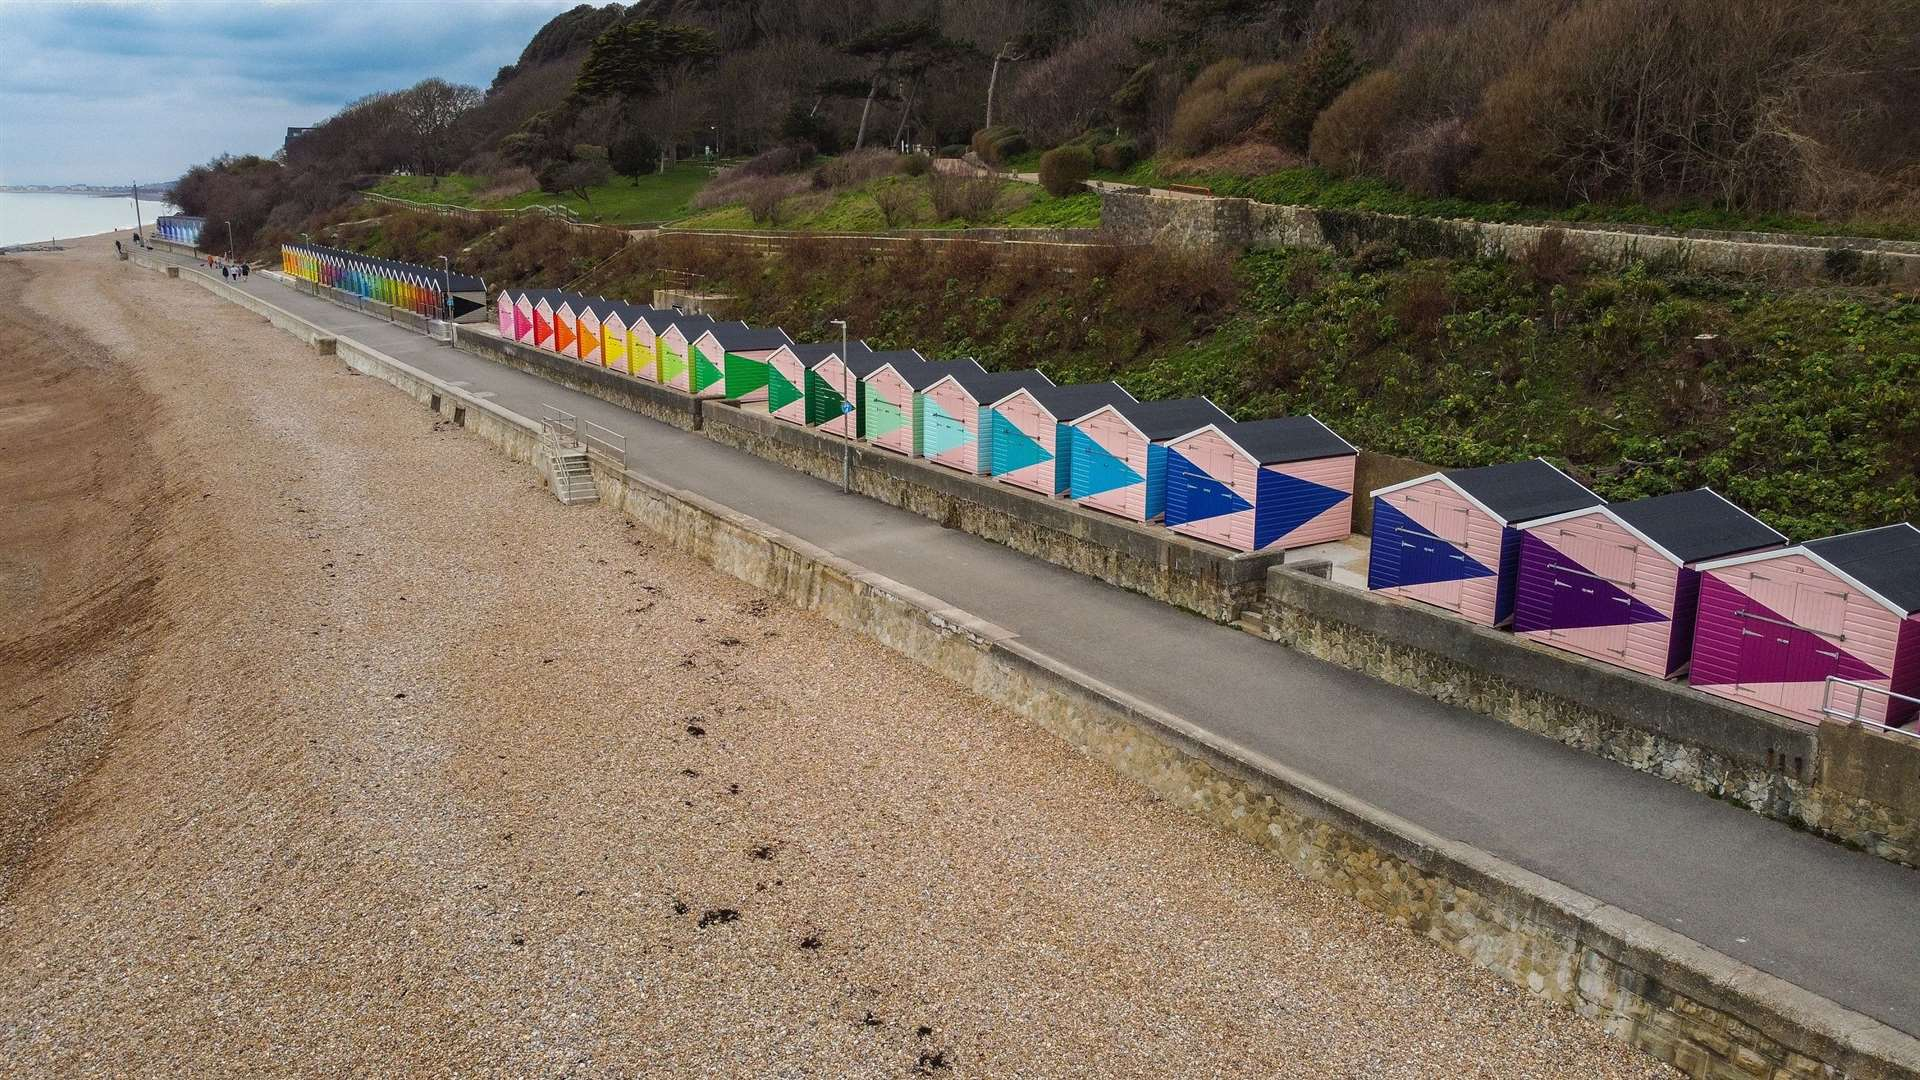 Folkestone's beach huts, by Rana Begum and commissioned for Creative Folkestone Triennial 2021 in partnership with Folkestone and Hythe District Council. Photo by Tom Bishop